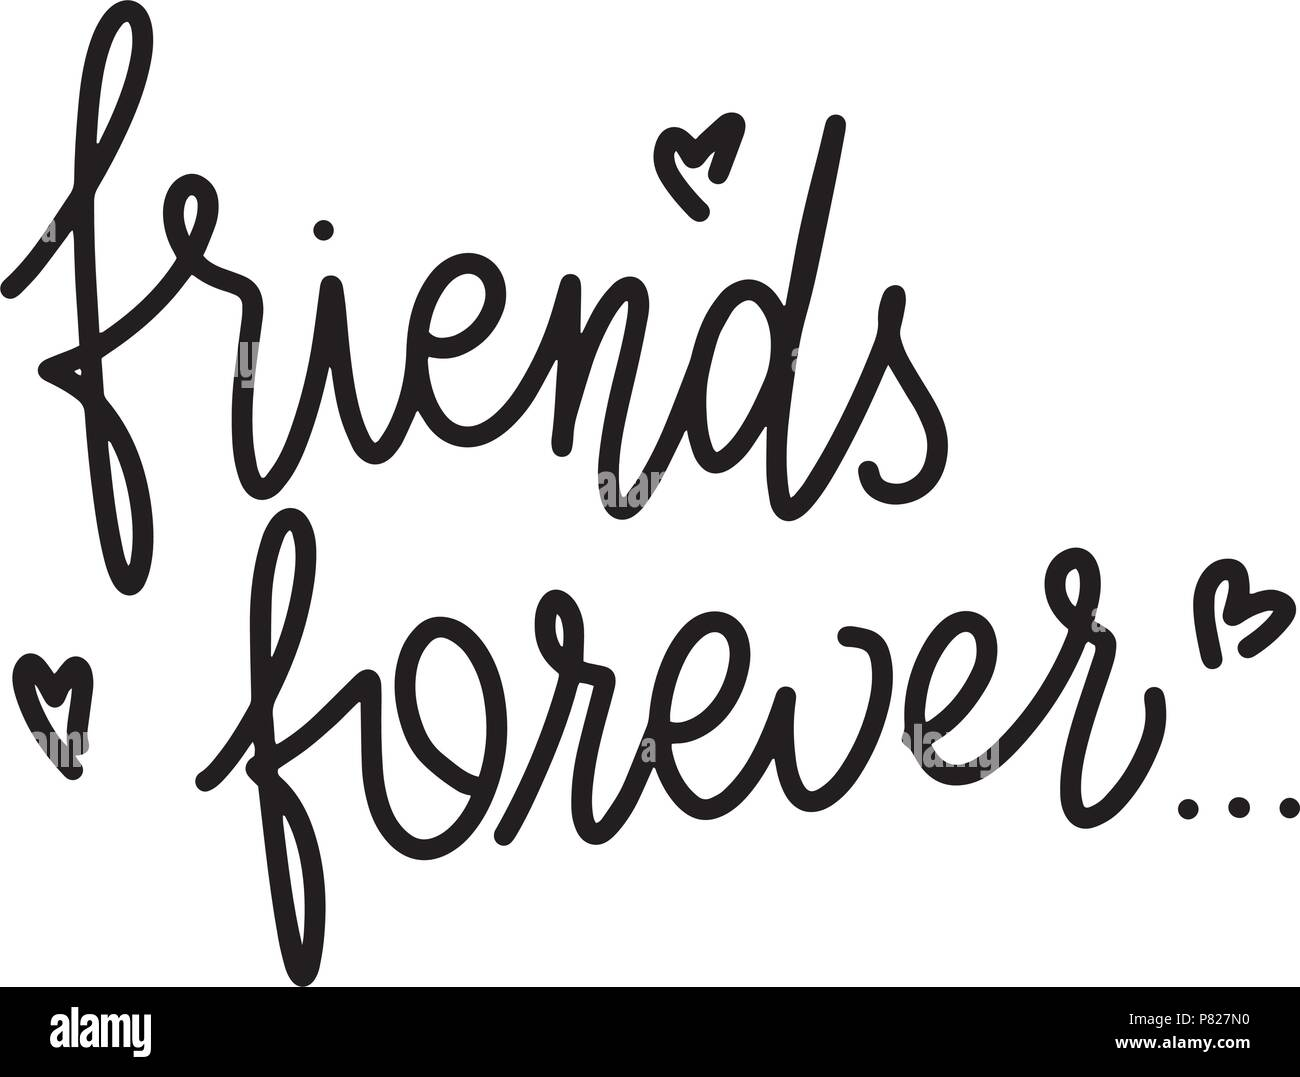 Friendship day hand drawn lettering friends forever vector friendship day hand drawn lettering friends forever vector elements for invitations posters greeting cards t shirt design m4hsunfo